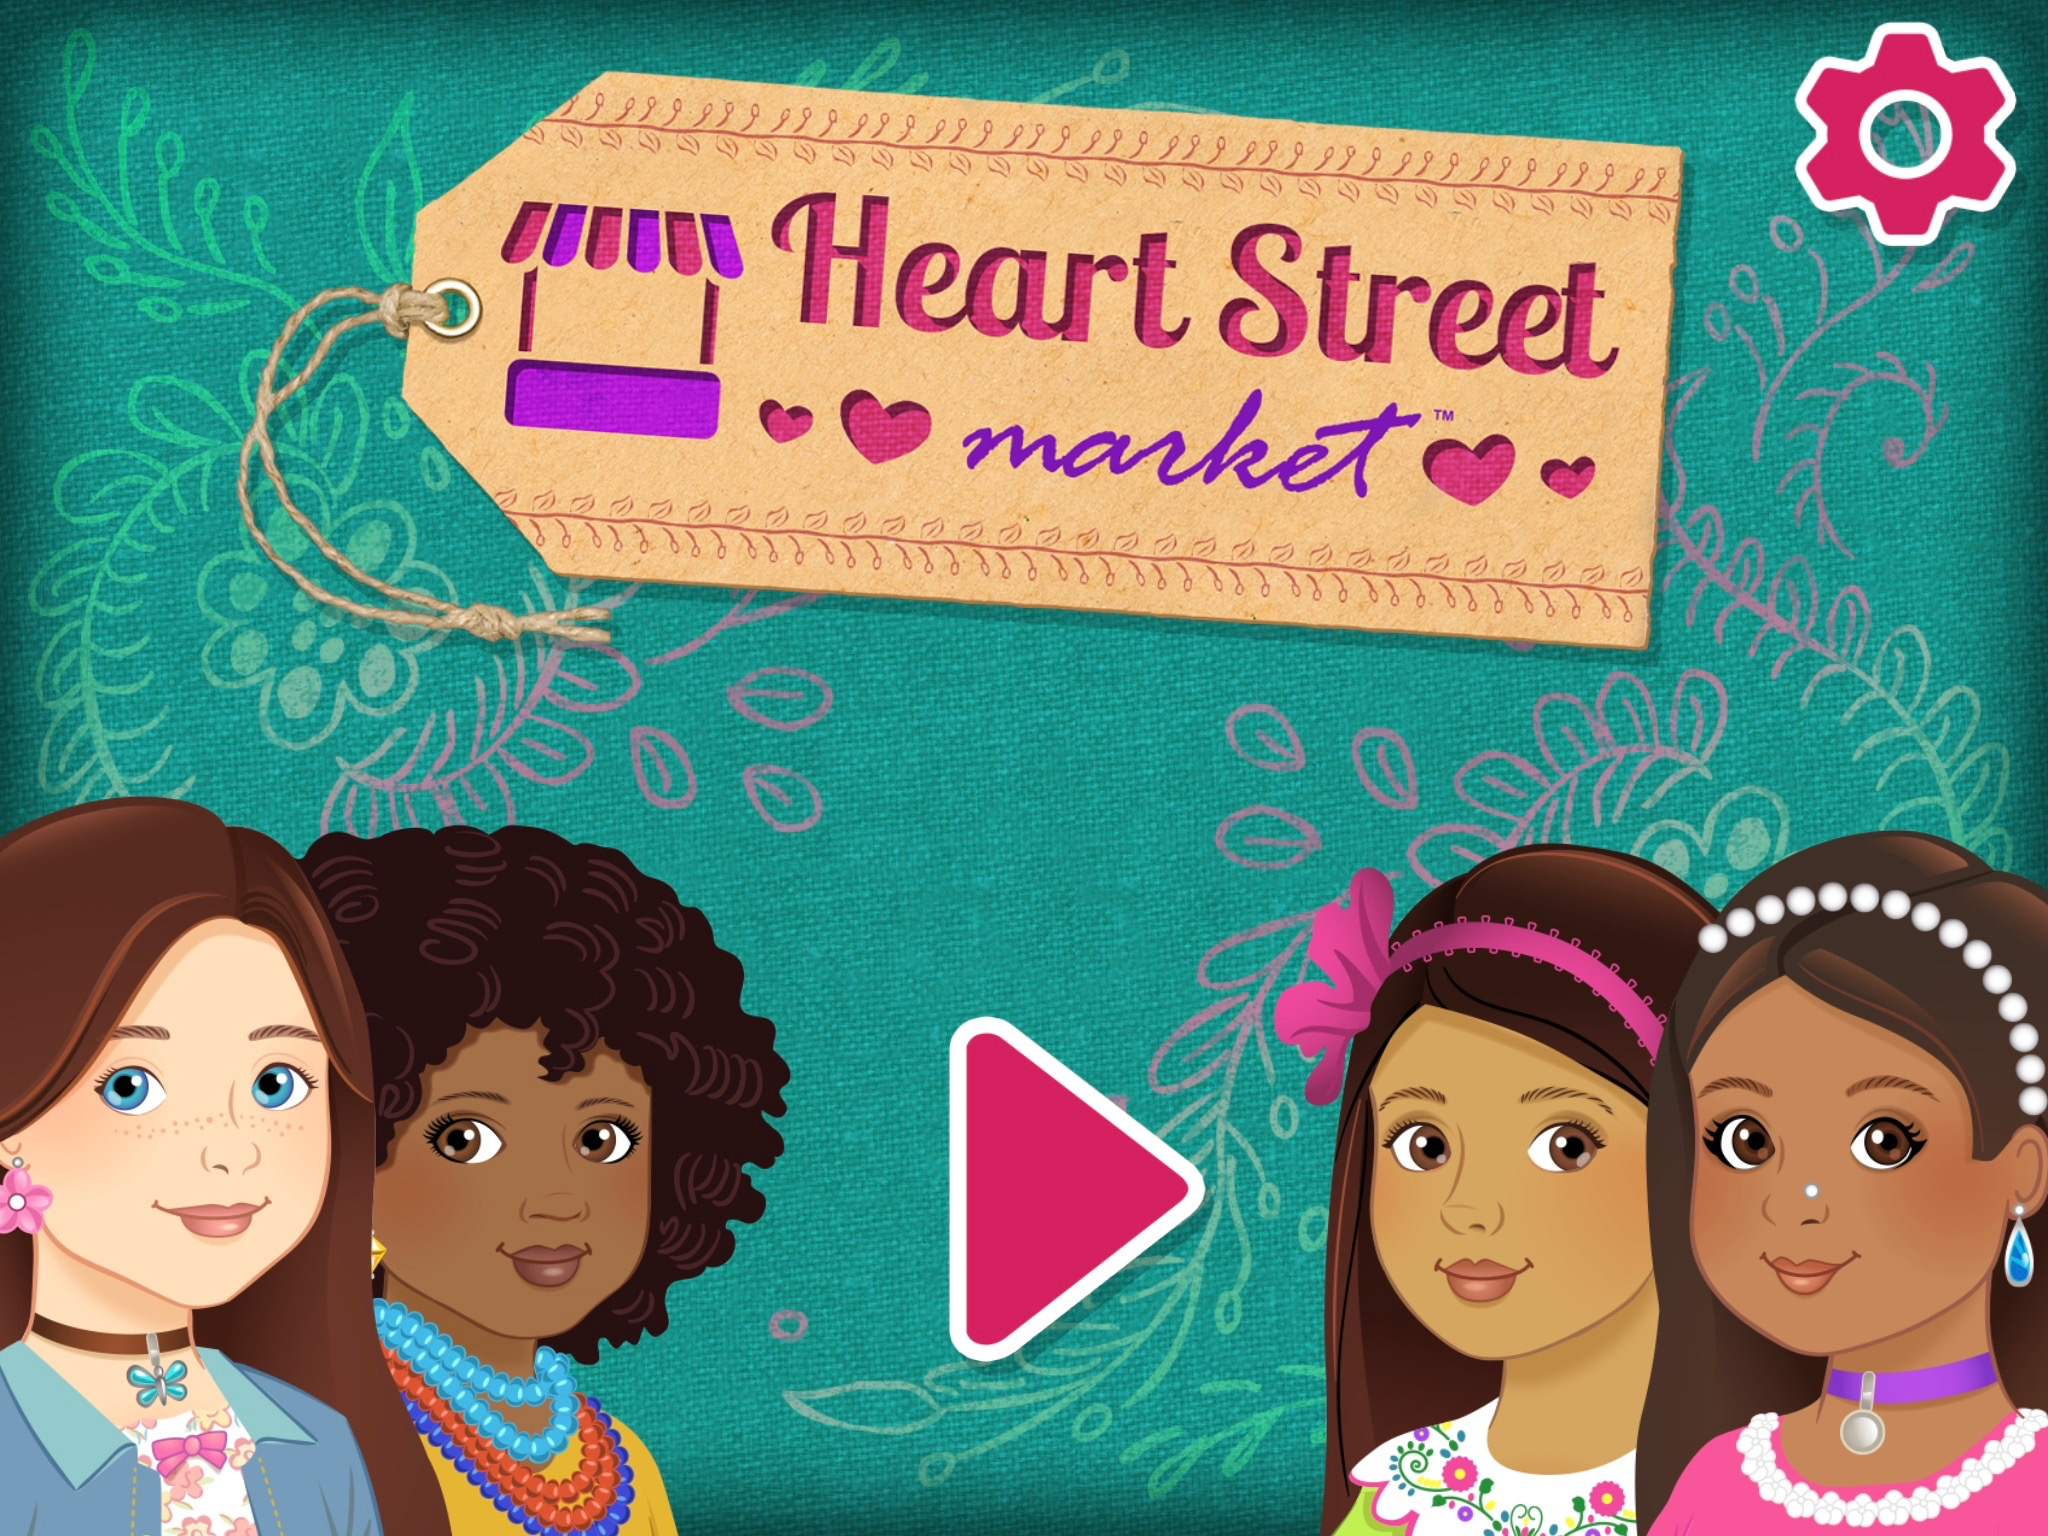 Heart Street Market: Changing the World One Heart at a Time!